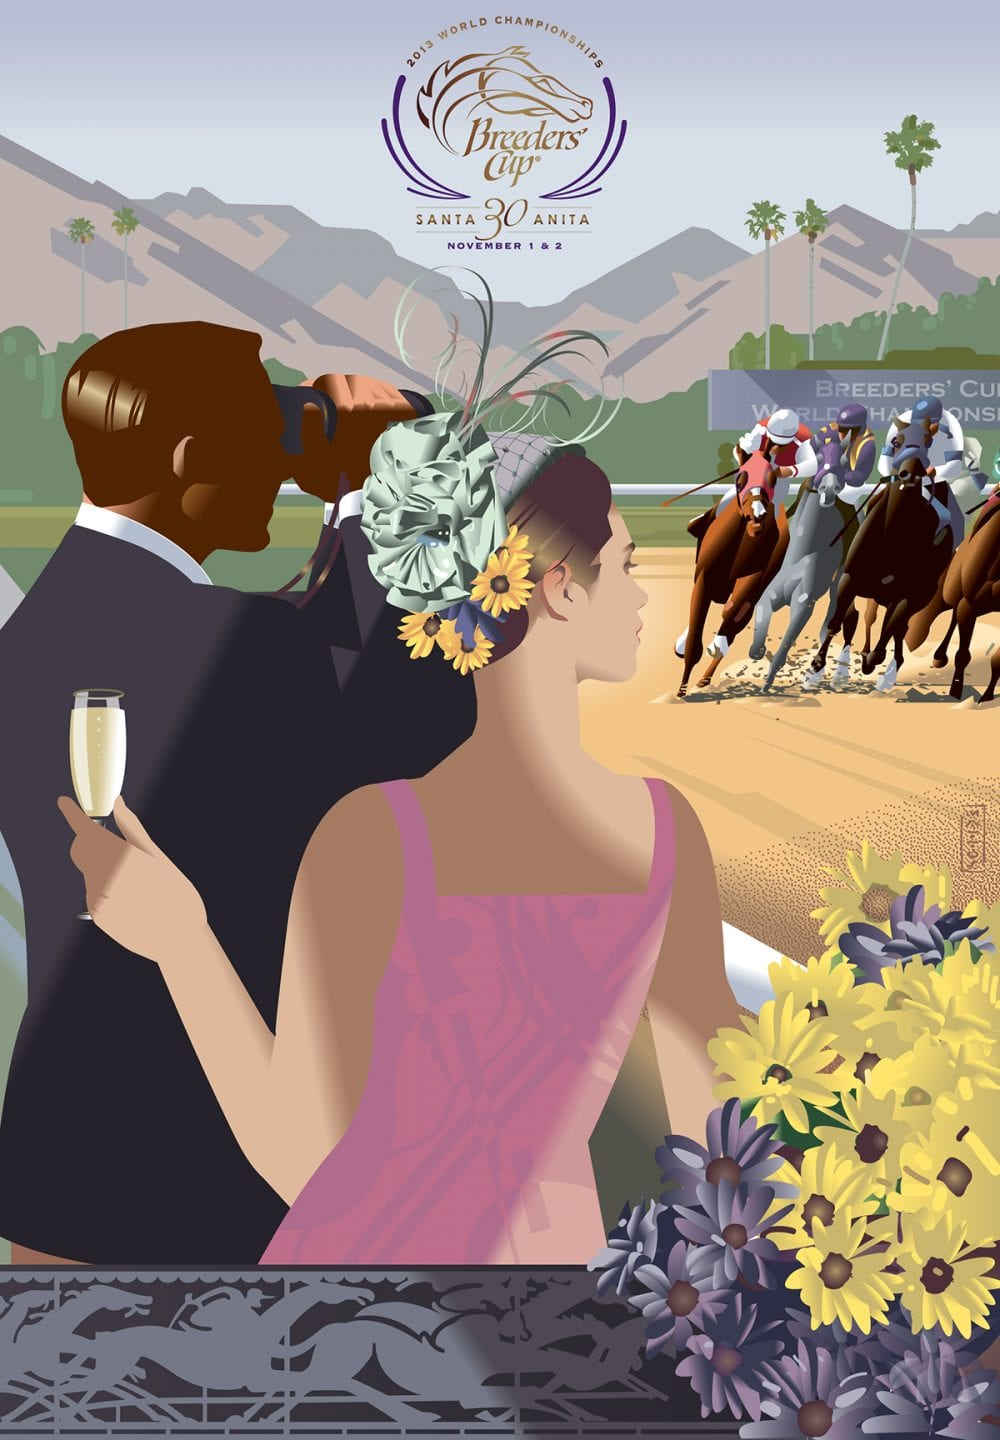 Vintage-inspired art deco image by John Mattos commemorating the 30th anniversary of the Breeders' Cup